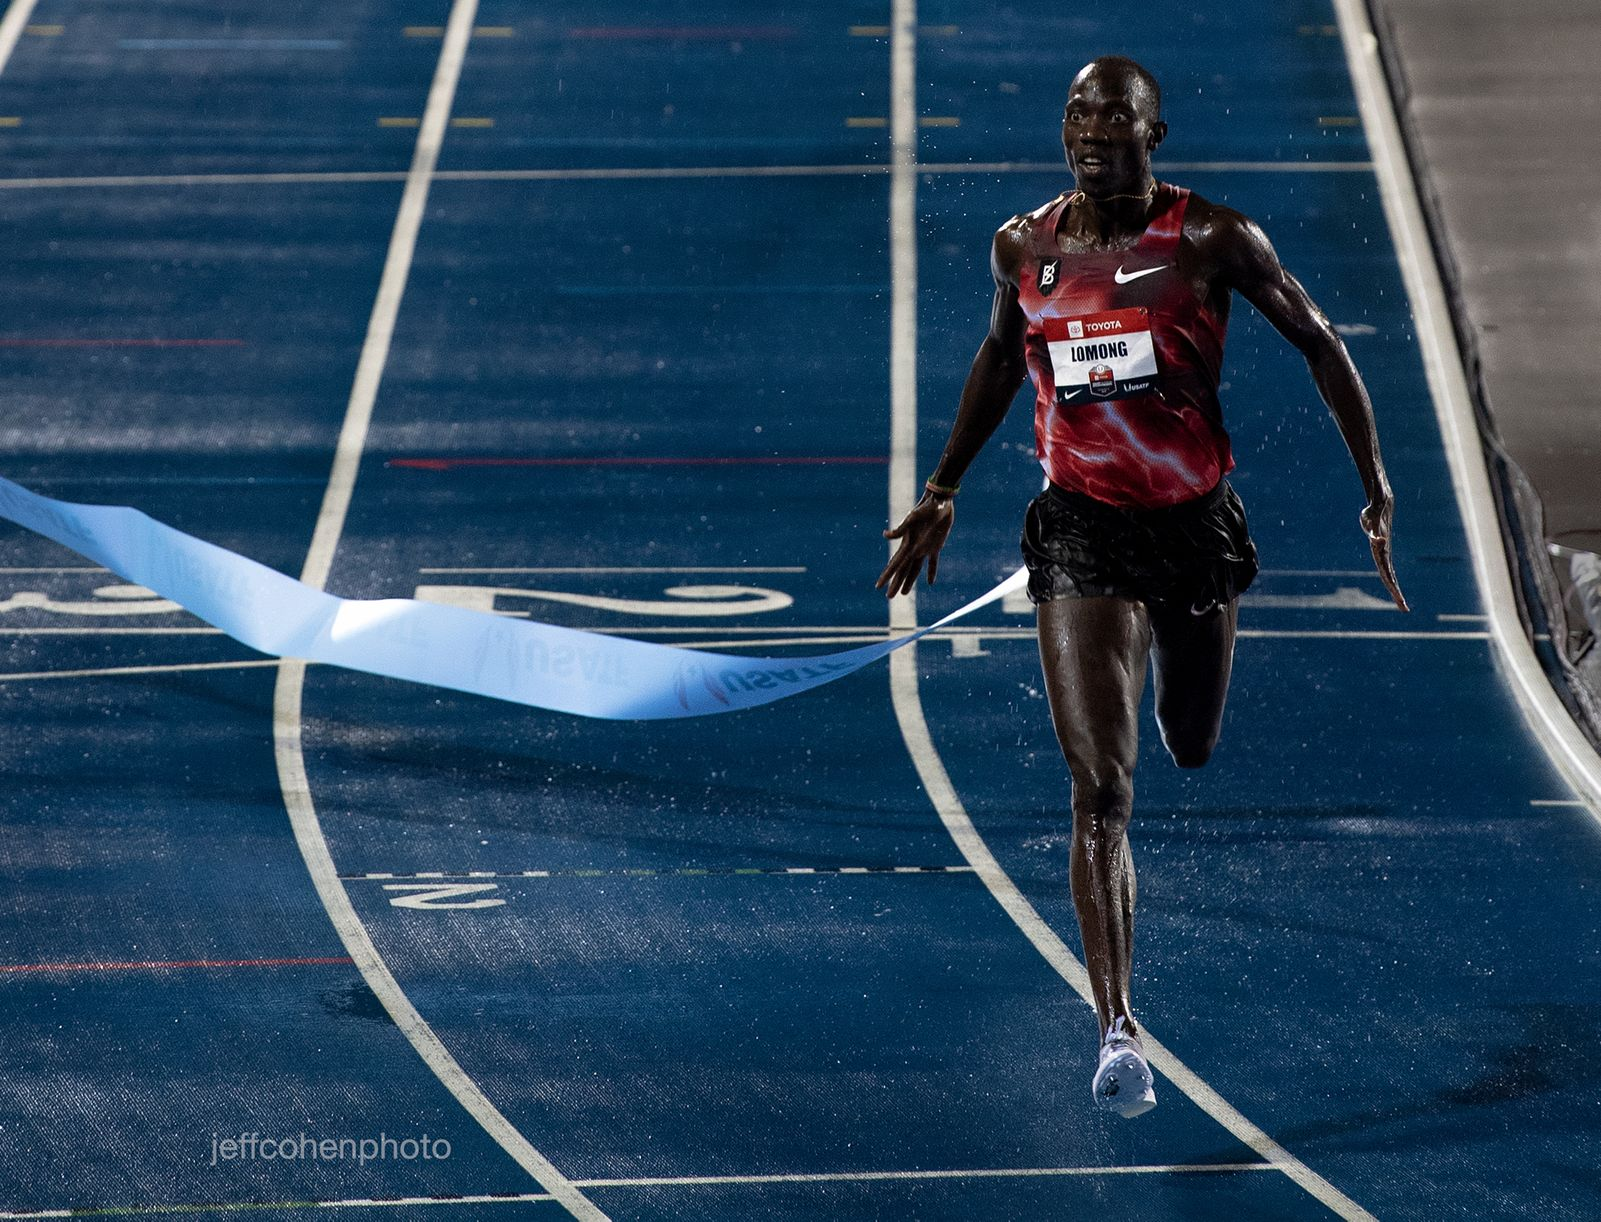 Lopez Lomong, wins the 10,000 meters at the 2019 Toyota USATF Outdoor Championships in Des Moines, Iowa.